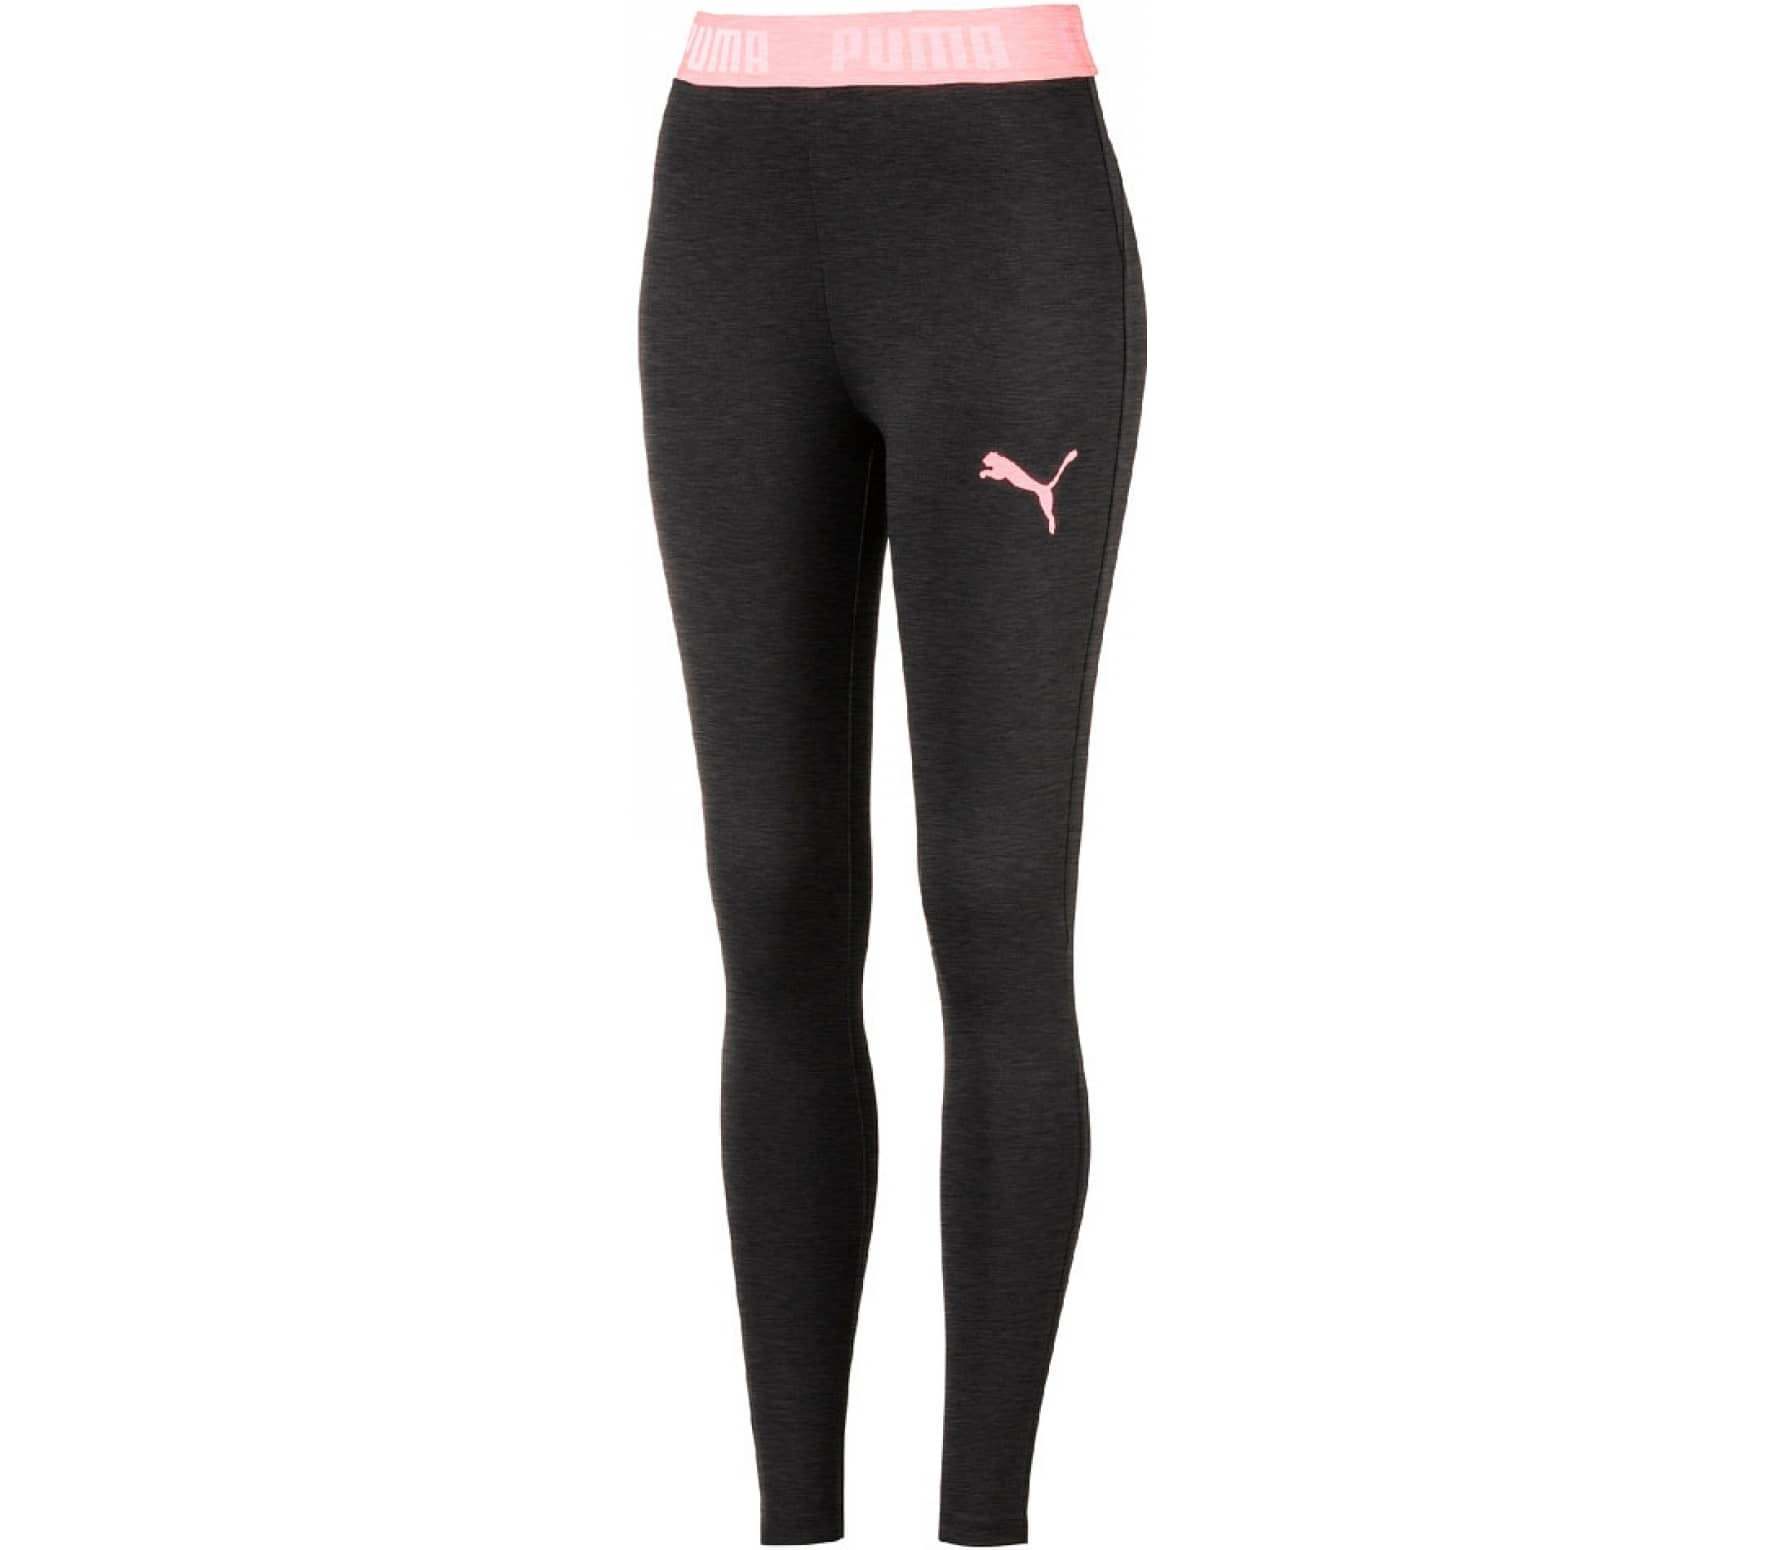 51a18fdfcb50 Puma - Active Essential Banded women s Tight (black pink) - buy it ...